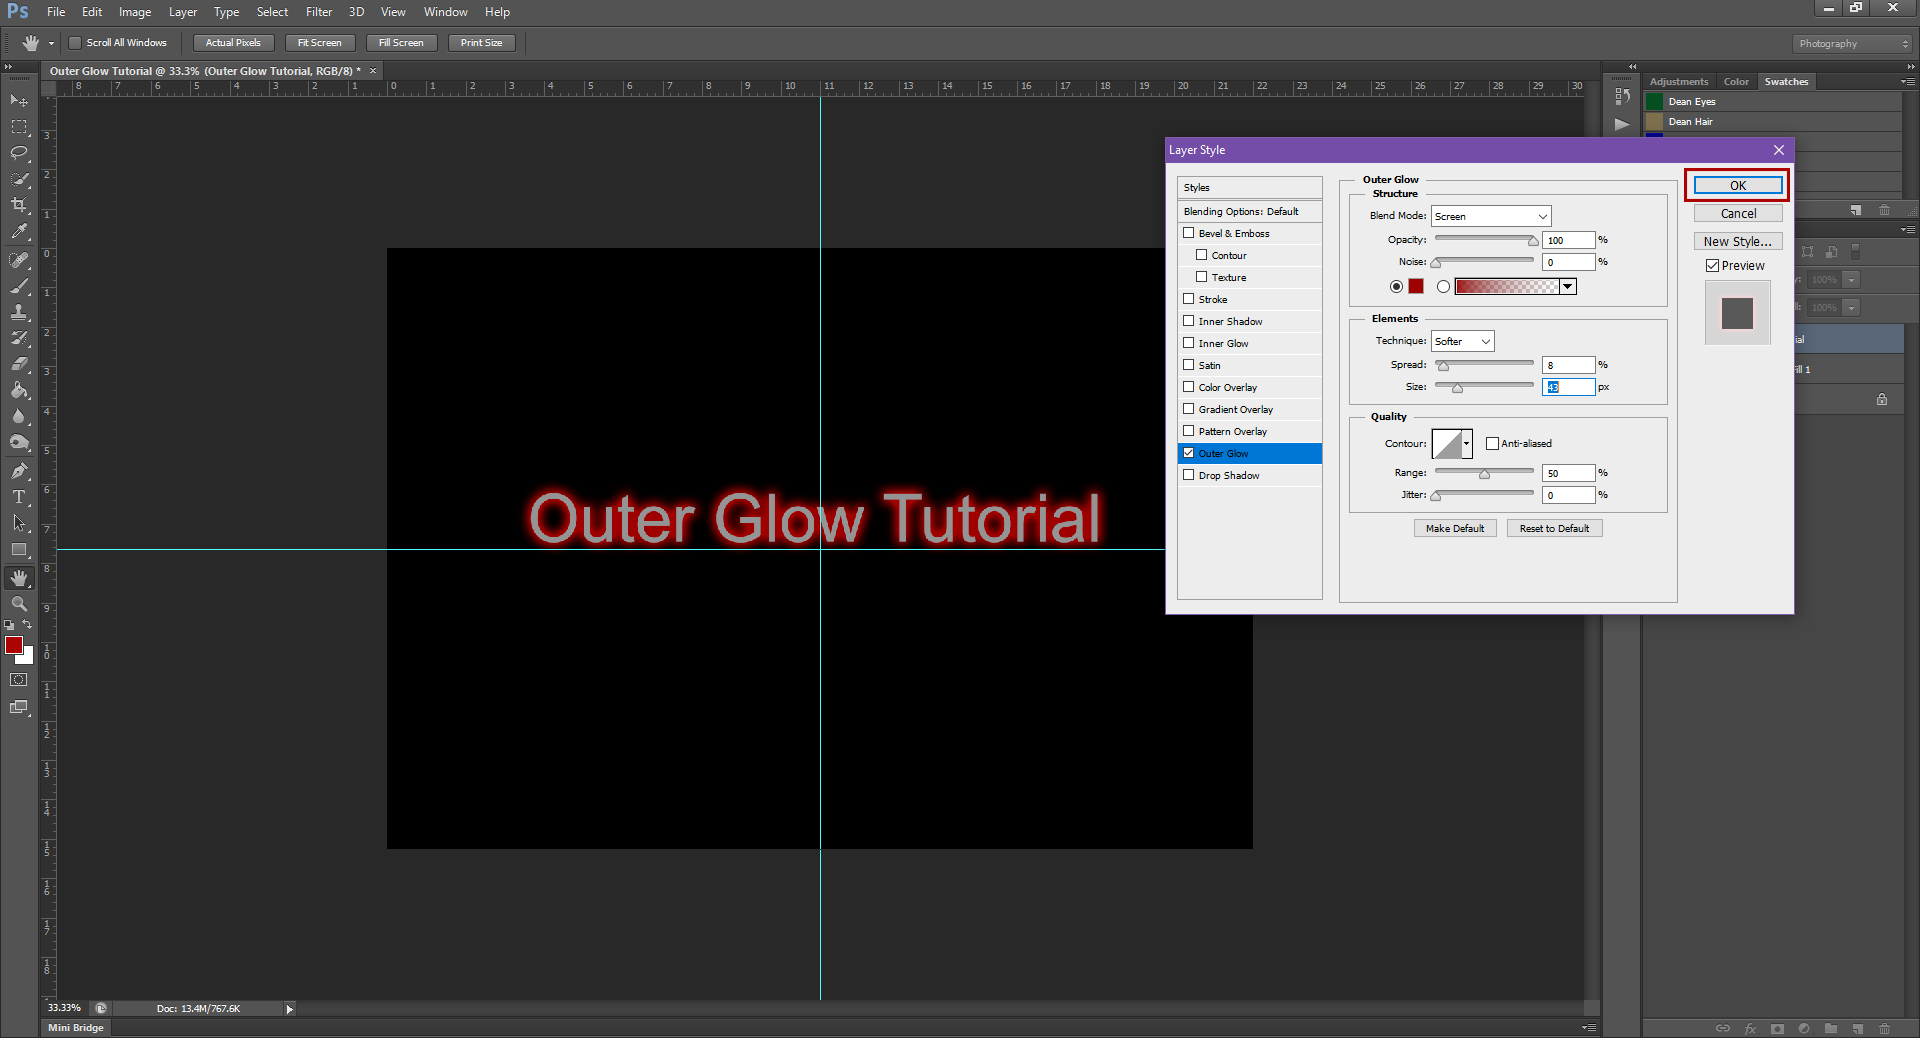 AterImber.com - Writing - Writer Tips - Photoshop Tutorials - Outer Glow - Step 5 - PHSH Tutorials, Outer Glow, photoshop, tutorials, indie authors, book covers